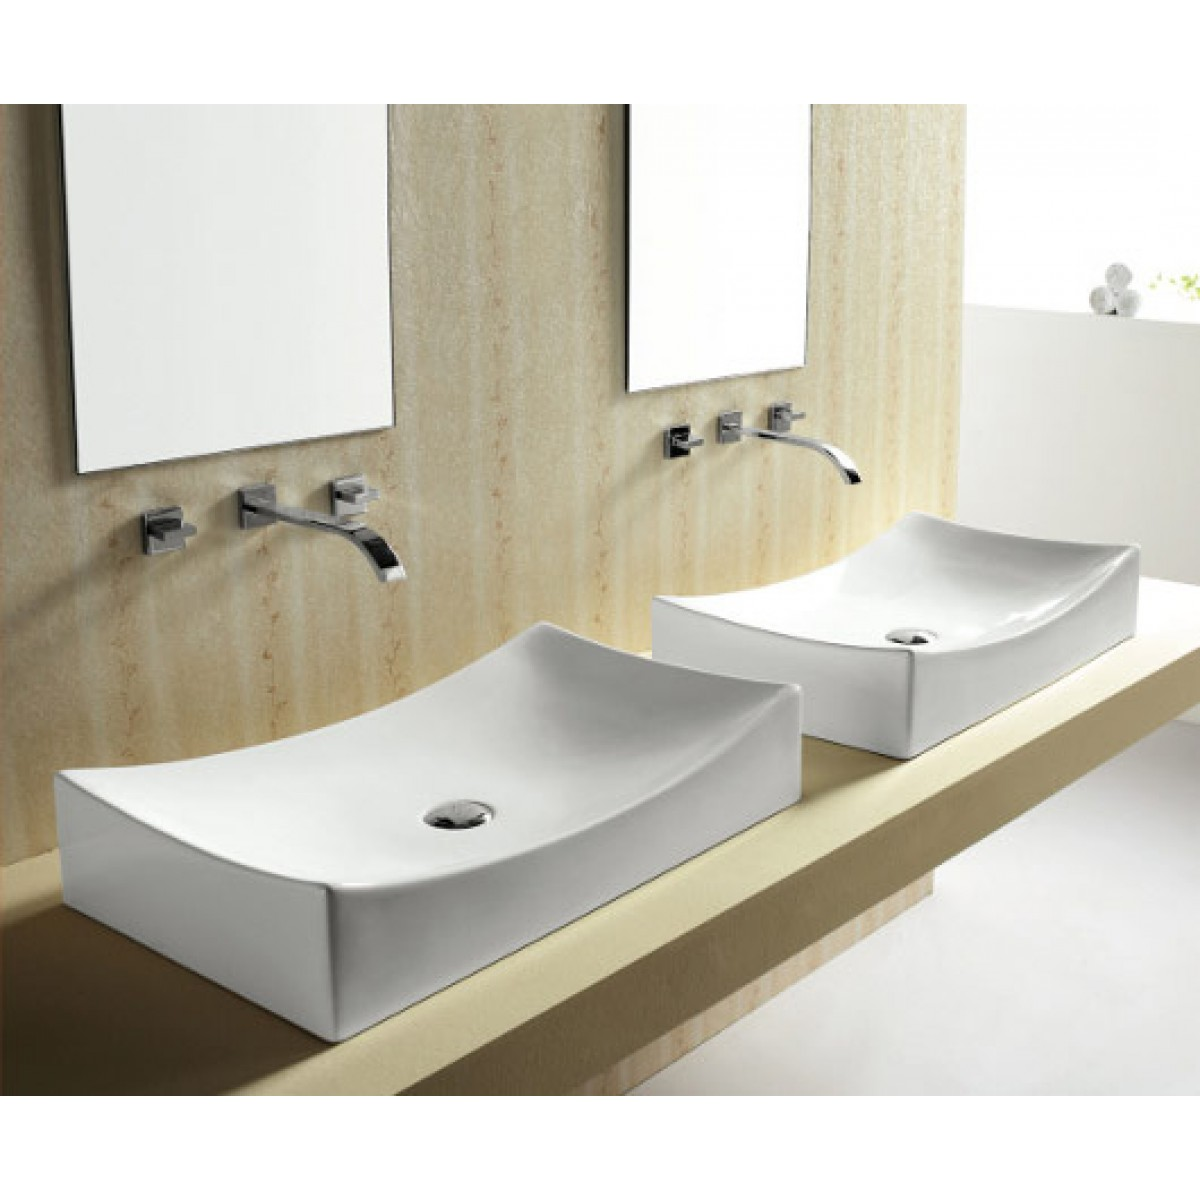 what is the small sink in european bathrooms european style porcelain ceramic countertop bathroom 26468